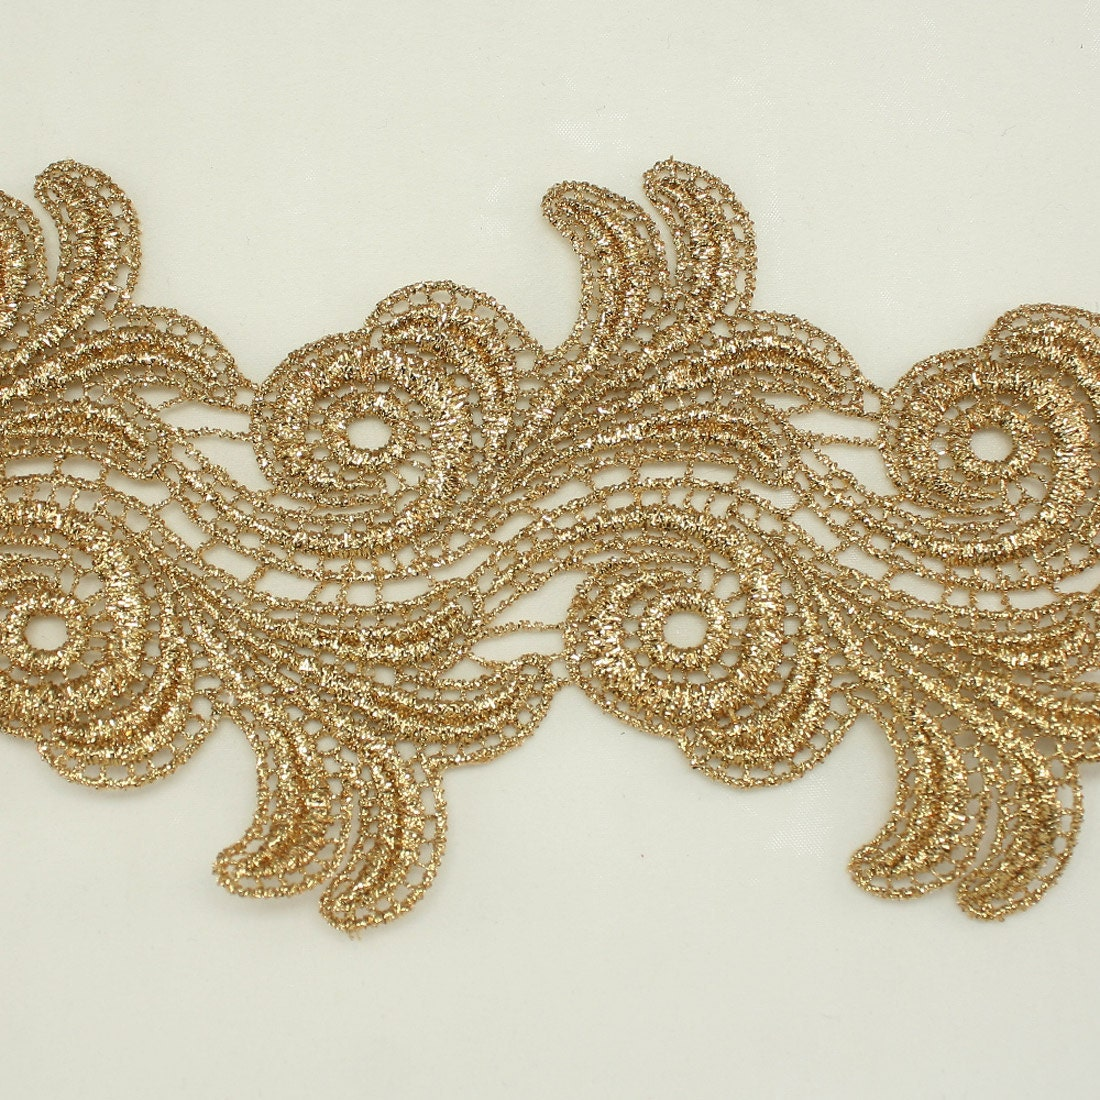 Gold Metallic Rayon Embroidery Lace Trim / 3.8 Wide